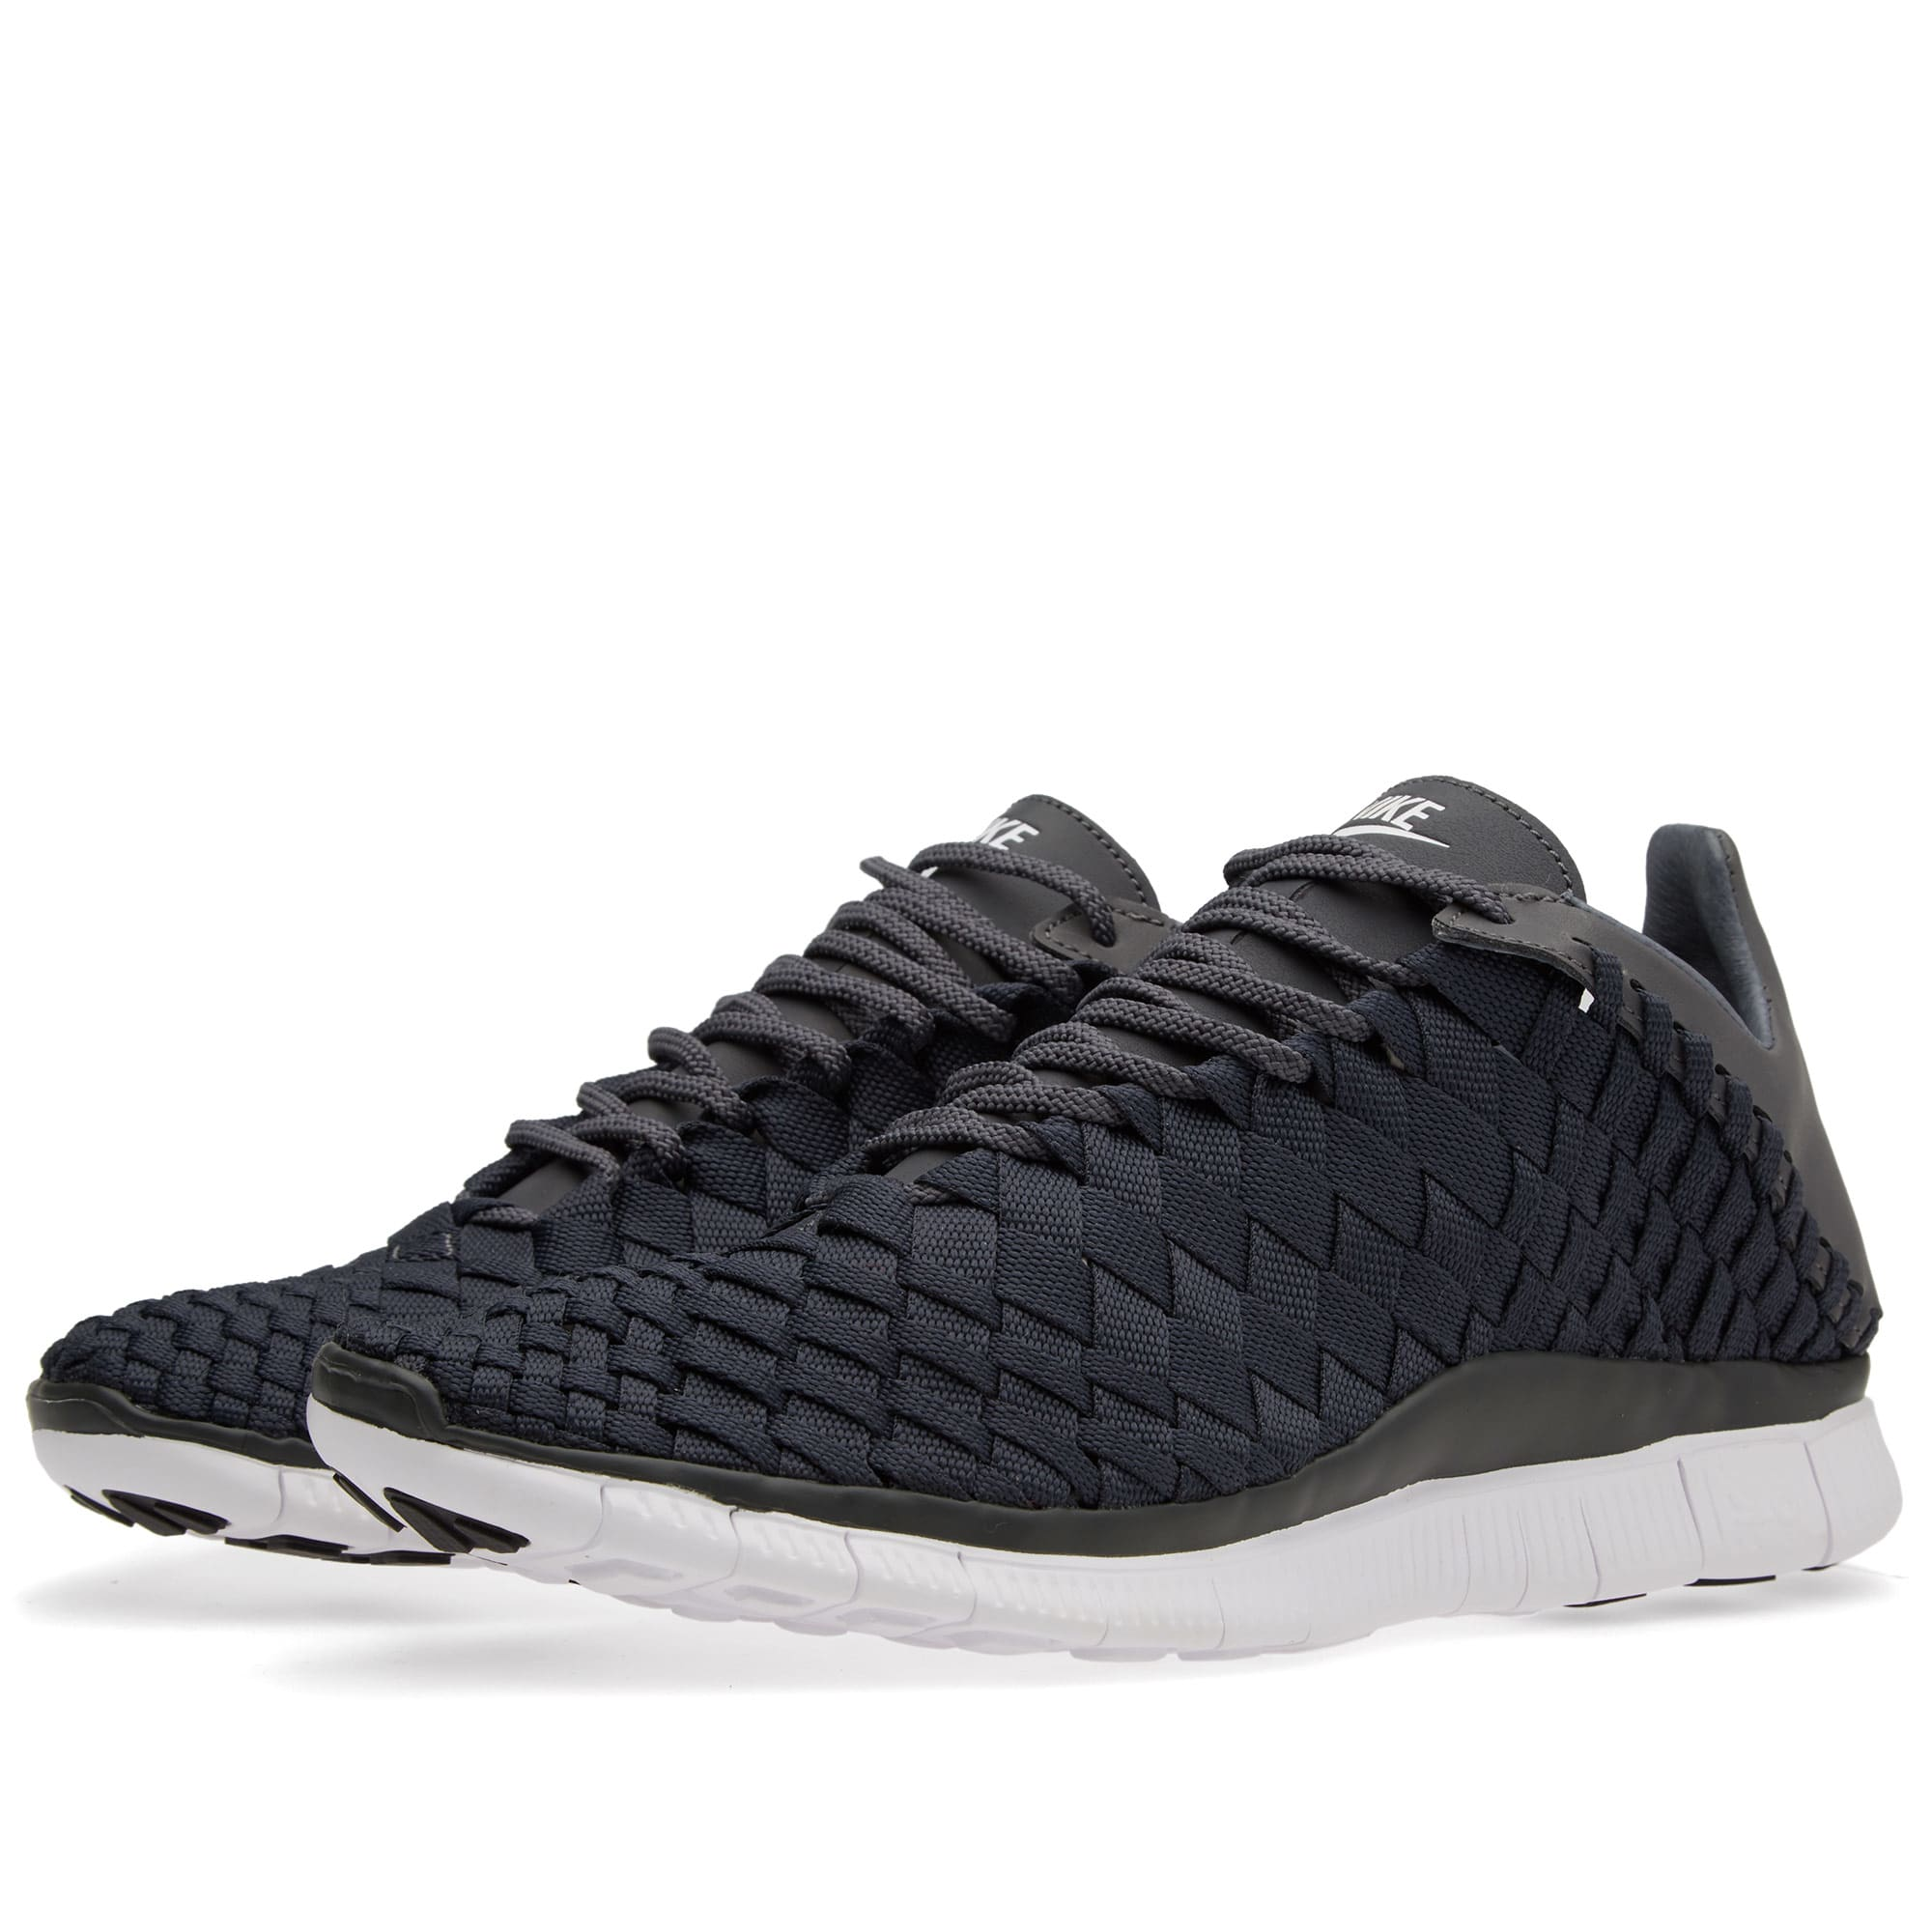 check out dd5f4 d66ae Nike Free Inneva Woven Anthracite, White   Dark Grey   END.